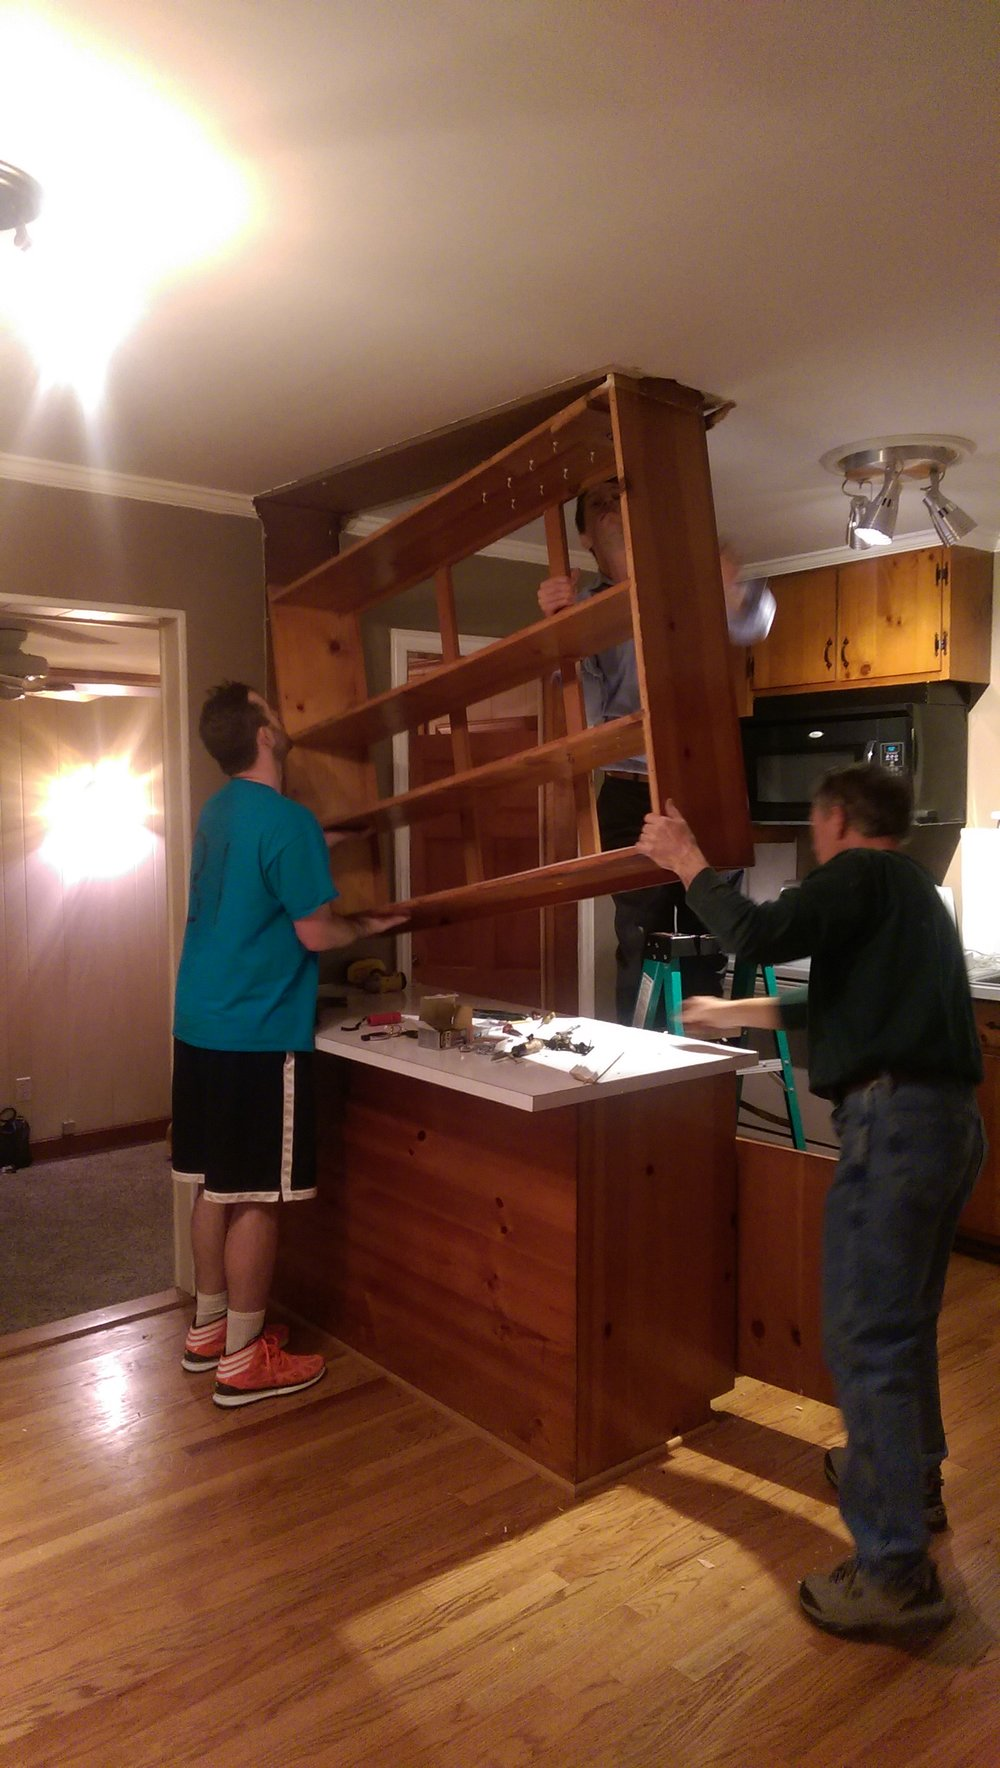 Look at my husband, brother-in-law and dad GO. There was literally a foot long bolt holding that thing to the ceiling.